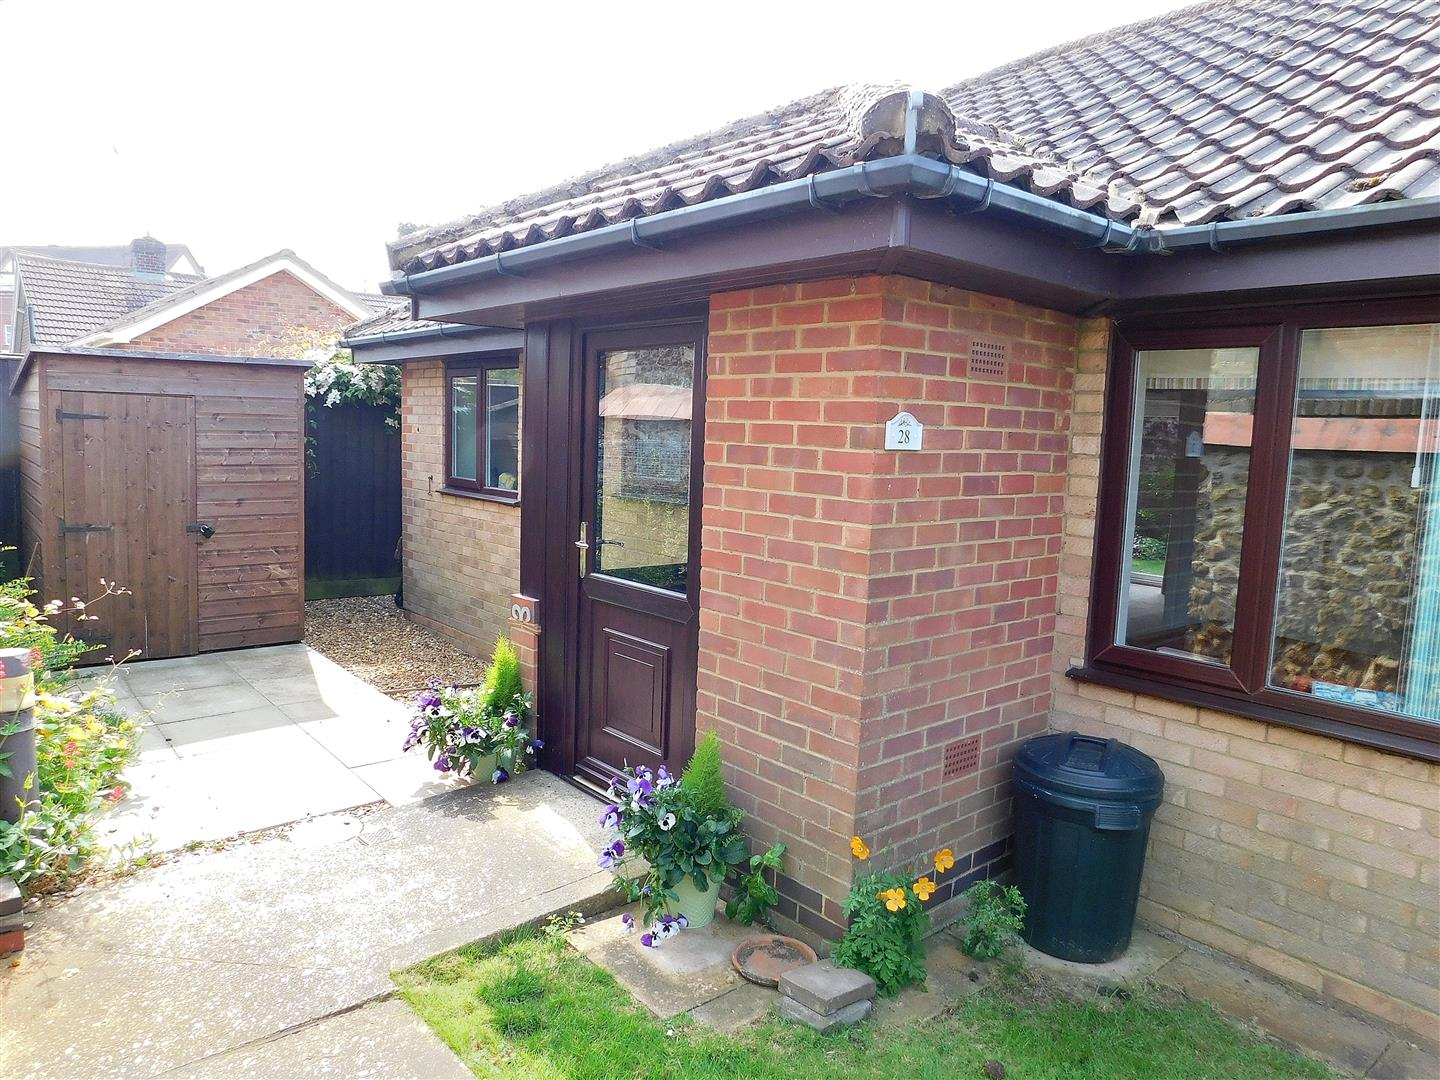 2 bed terraced bungalow for sale in Hunstanton, PE36 5HF - Property Image 1